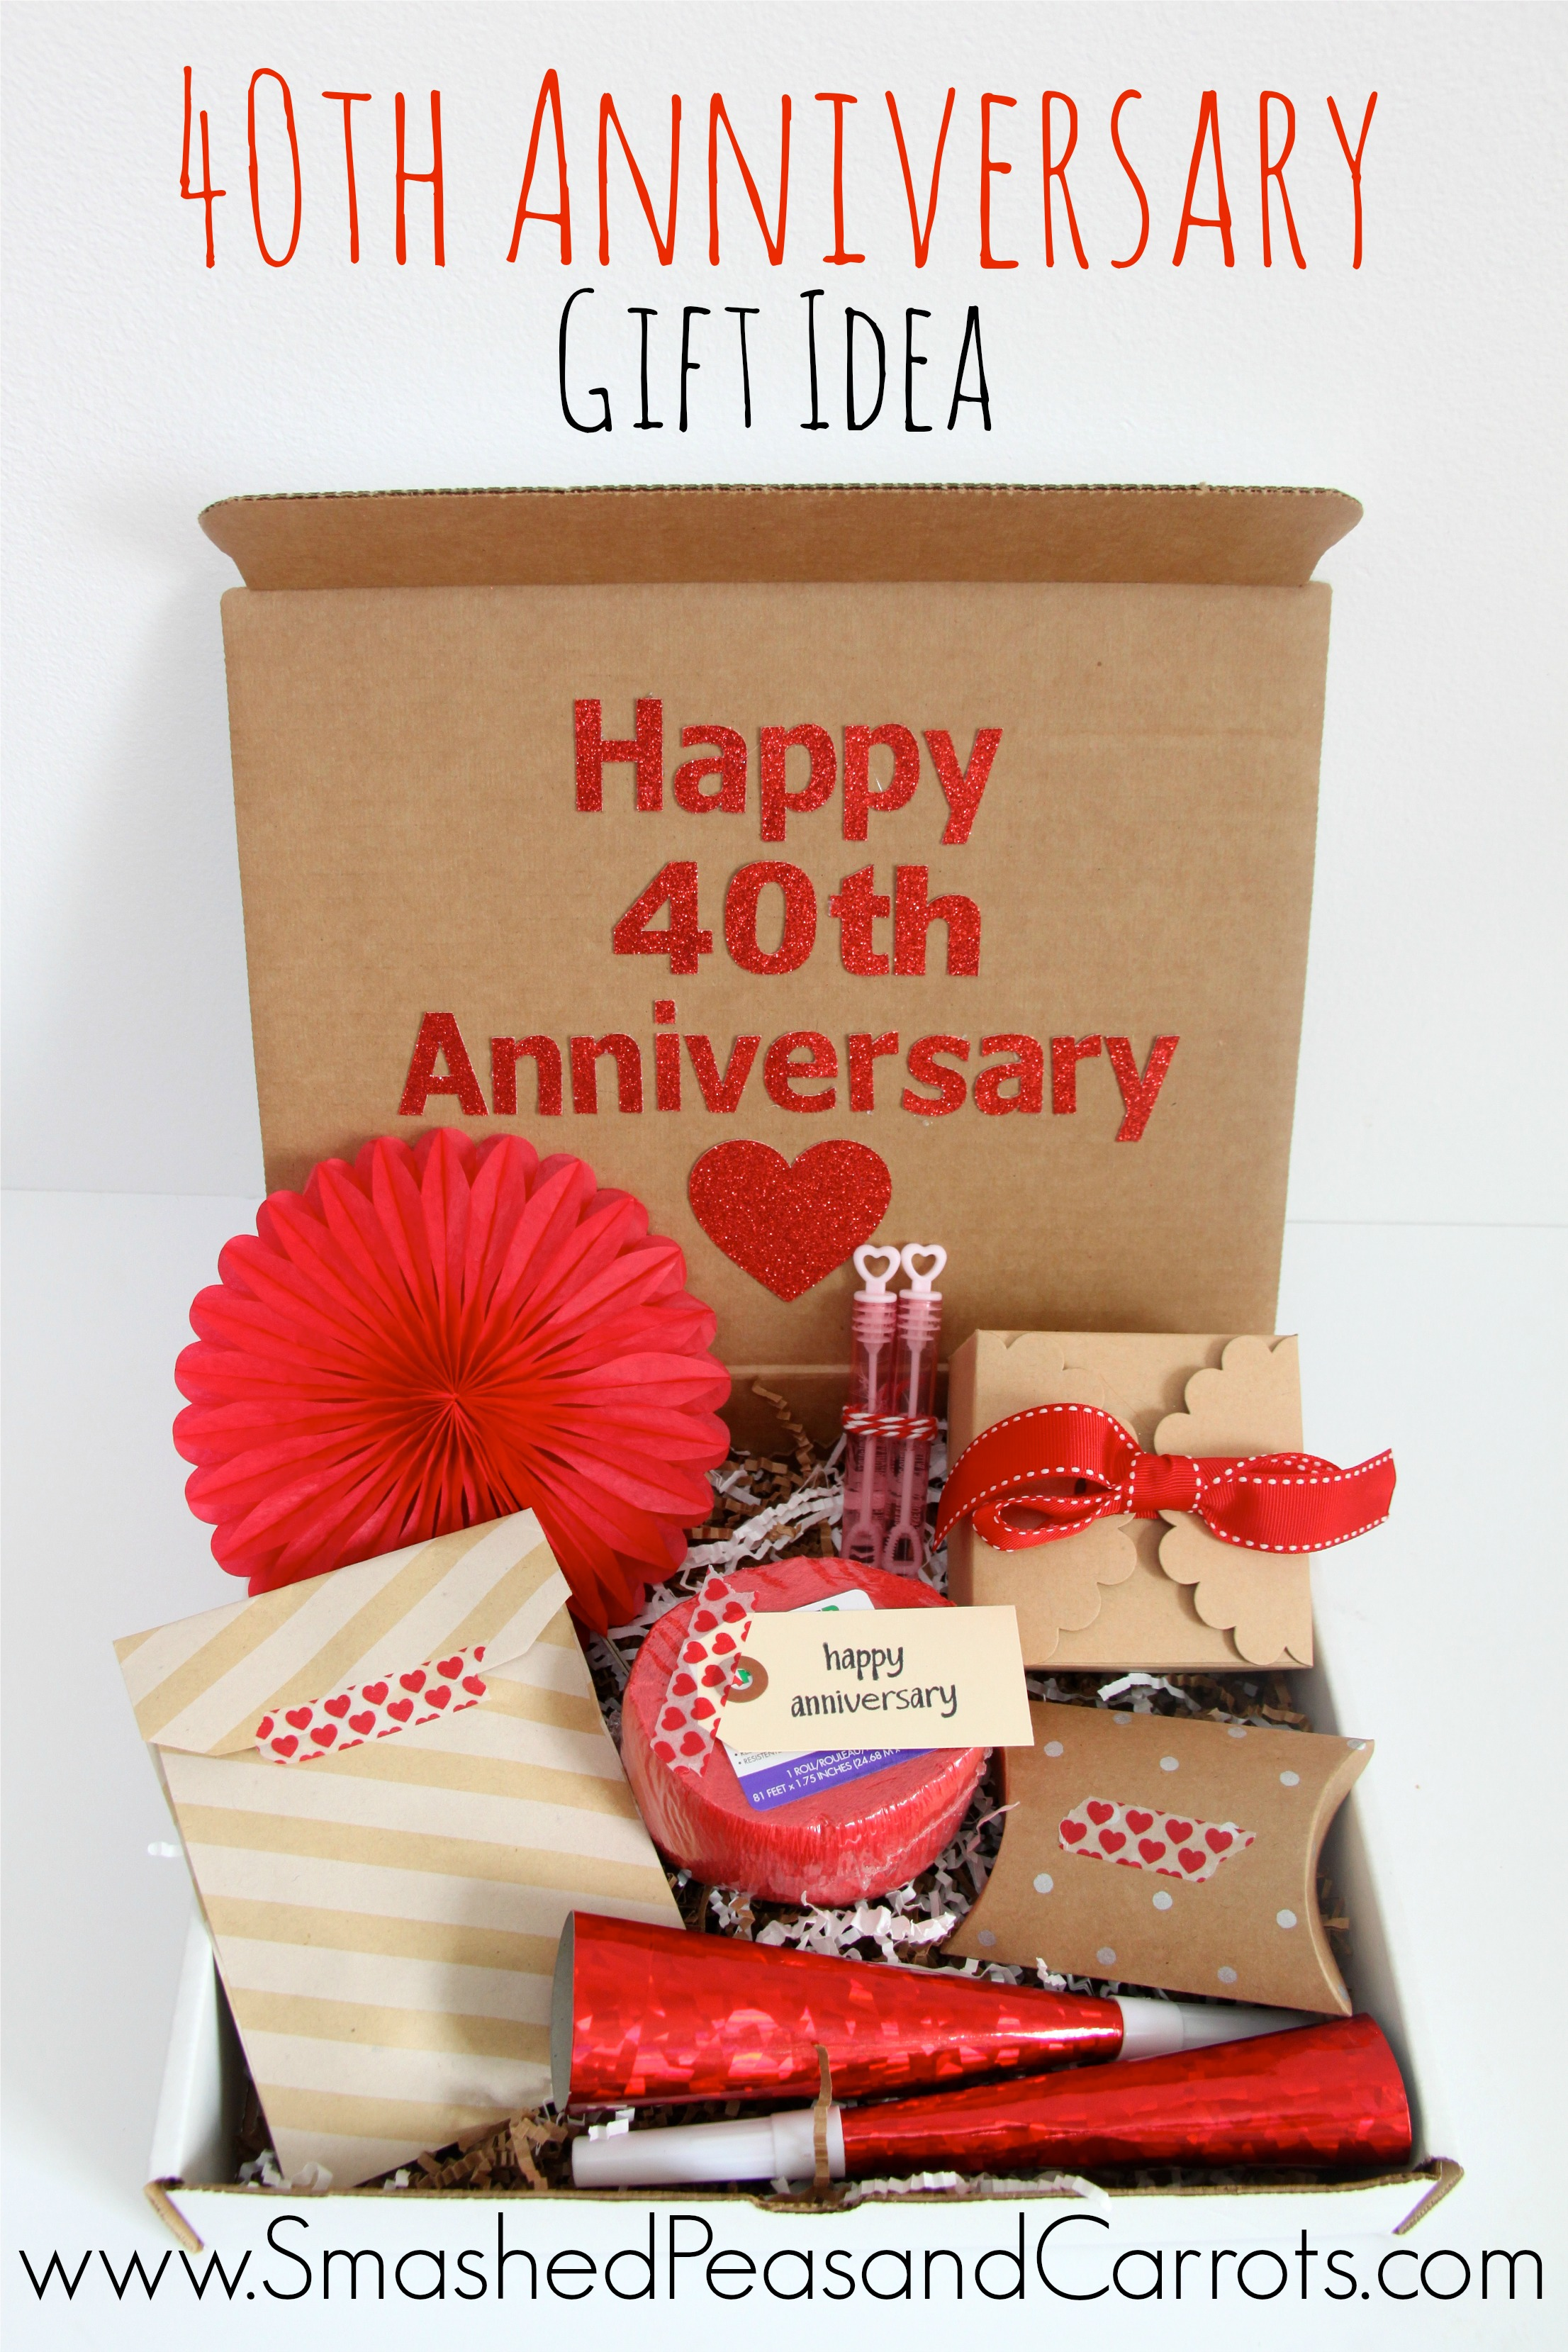 40th Wedding Anniversary Gifts For Mum And Dad : past weekend my adorable mom and dad celebrated their 40th anniversary ...